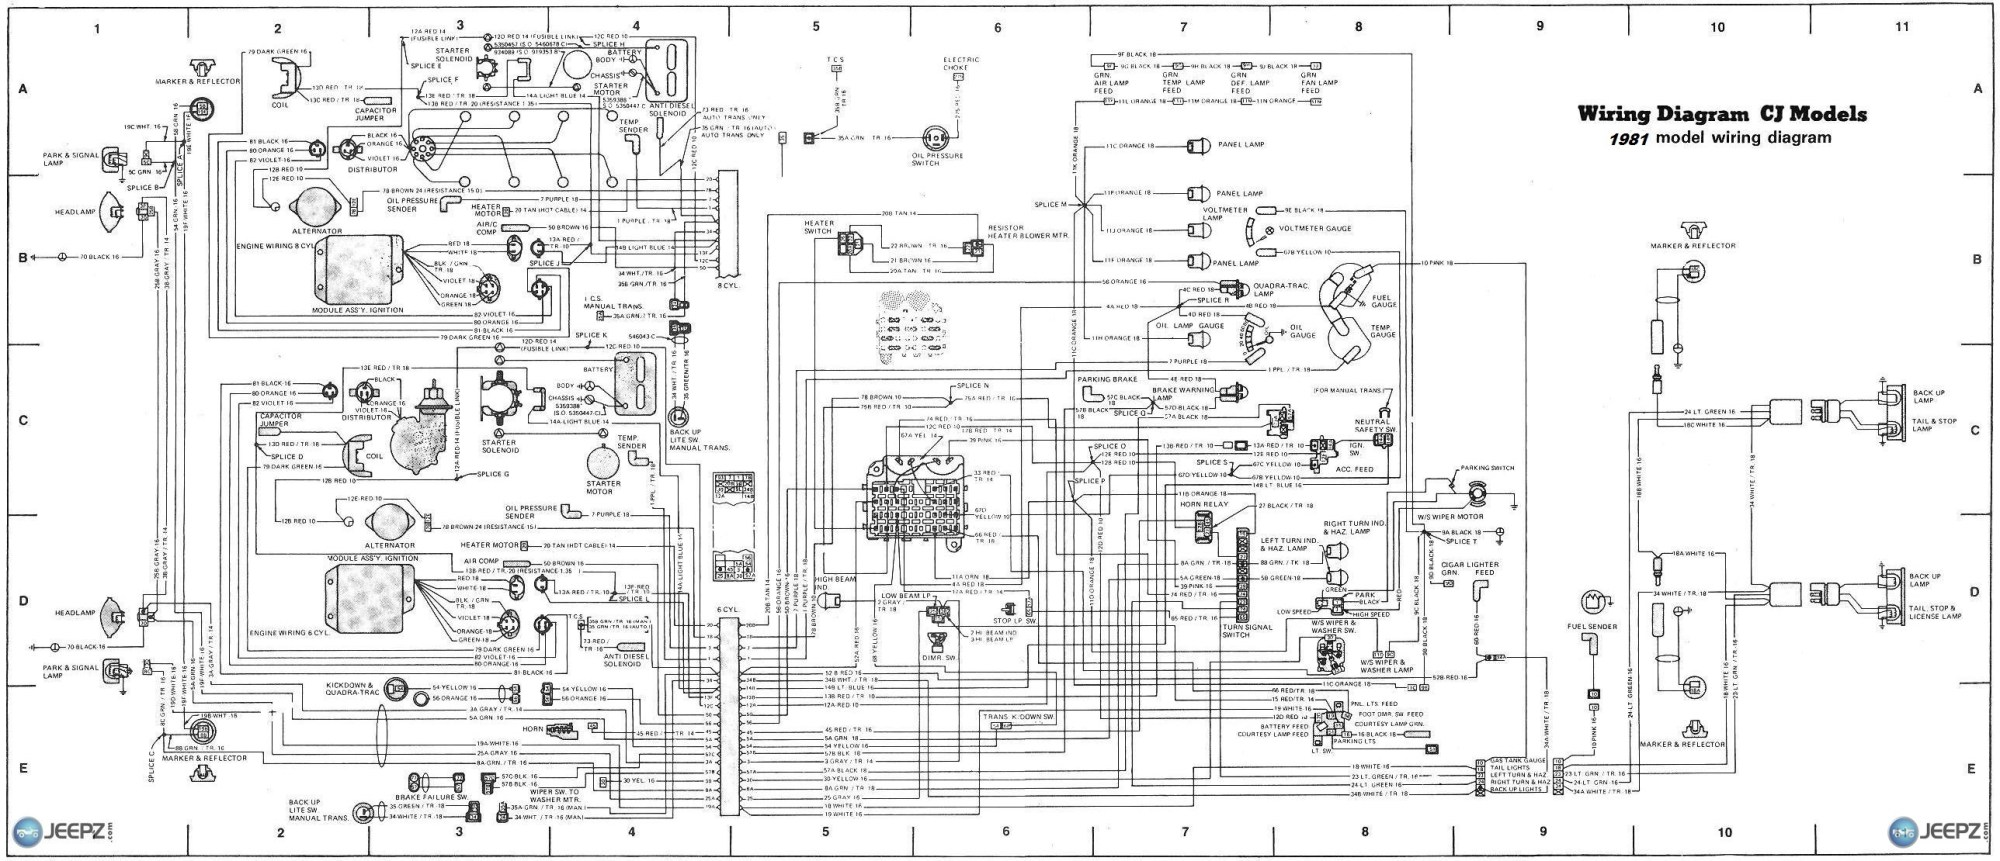 hight resolution of 2008 jeep wiring diagram online wiring diagram data2012 jeep compass engine diagram wiring schematic diagram2012 jeep